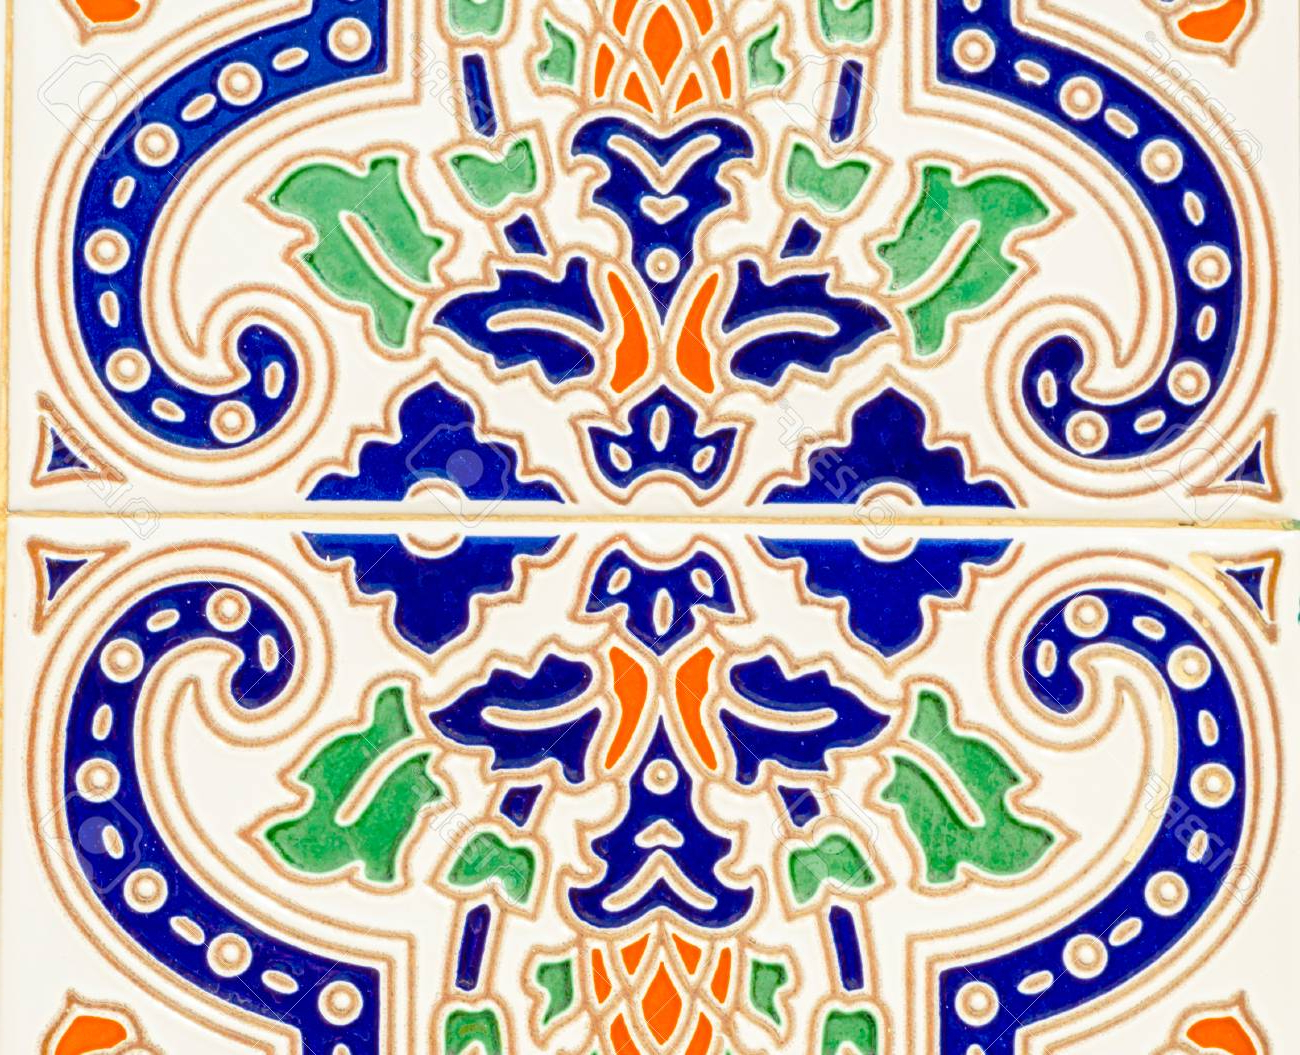 Traditional Ornamental Spanish Decorative Tiles, Original Ceramic Within Best And Newest Spanish Ornamental Wall Decor (Gallery 20 of 20)